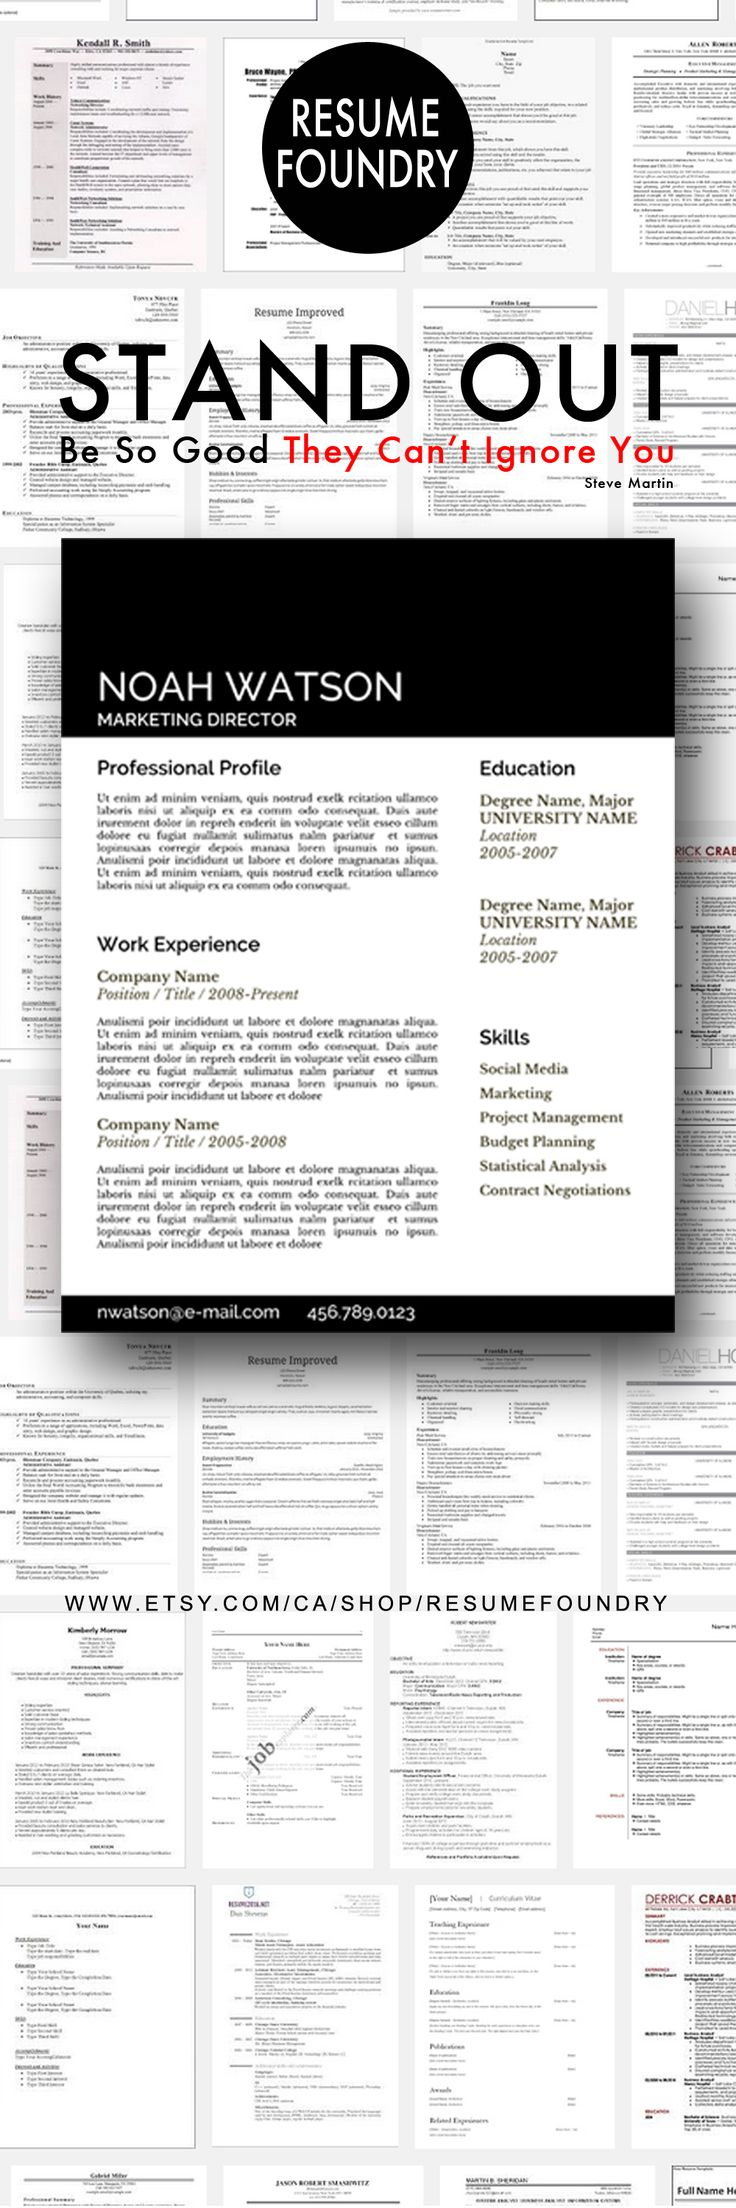 Resume Design 6 Seconds To Stand Out Make Those